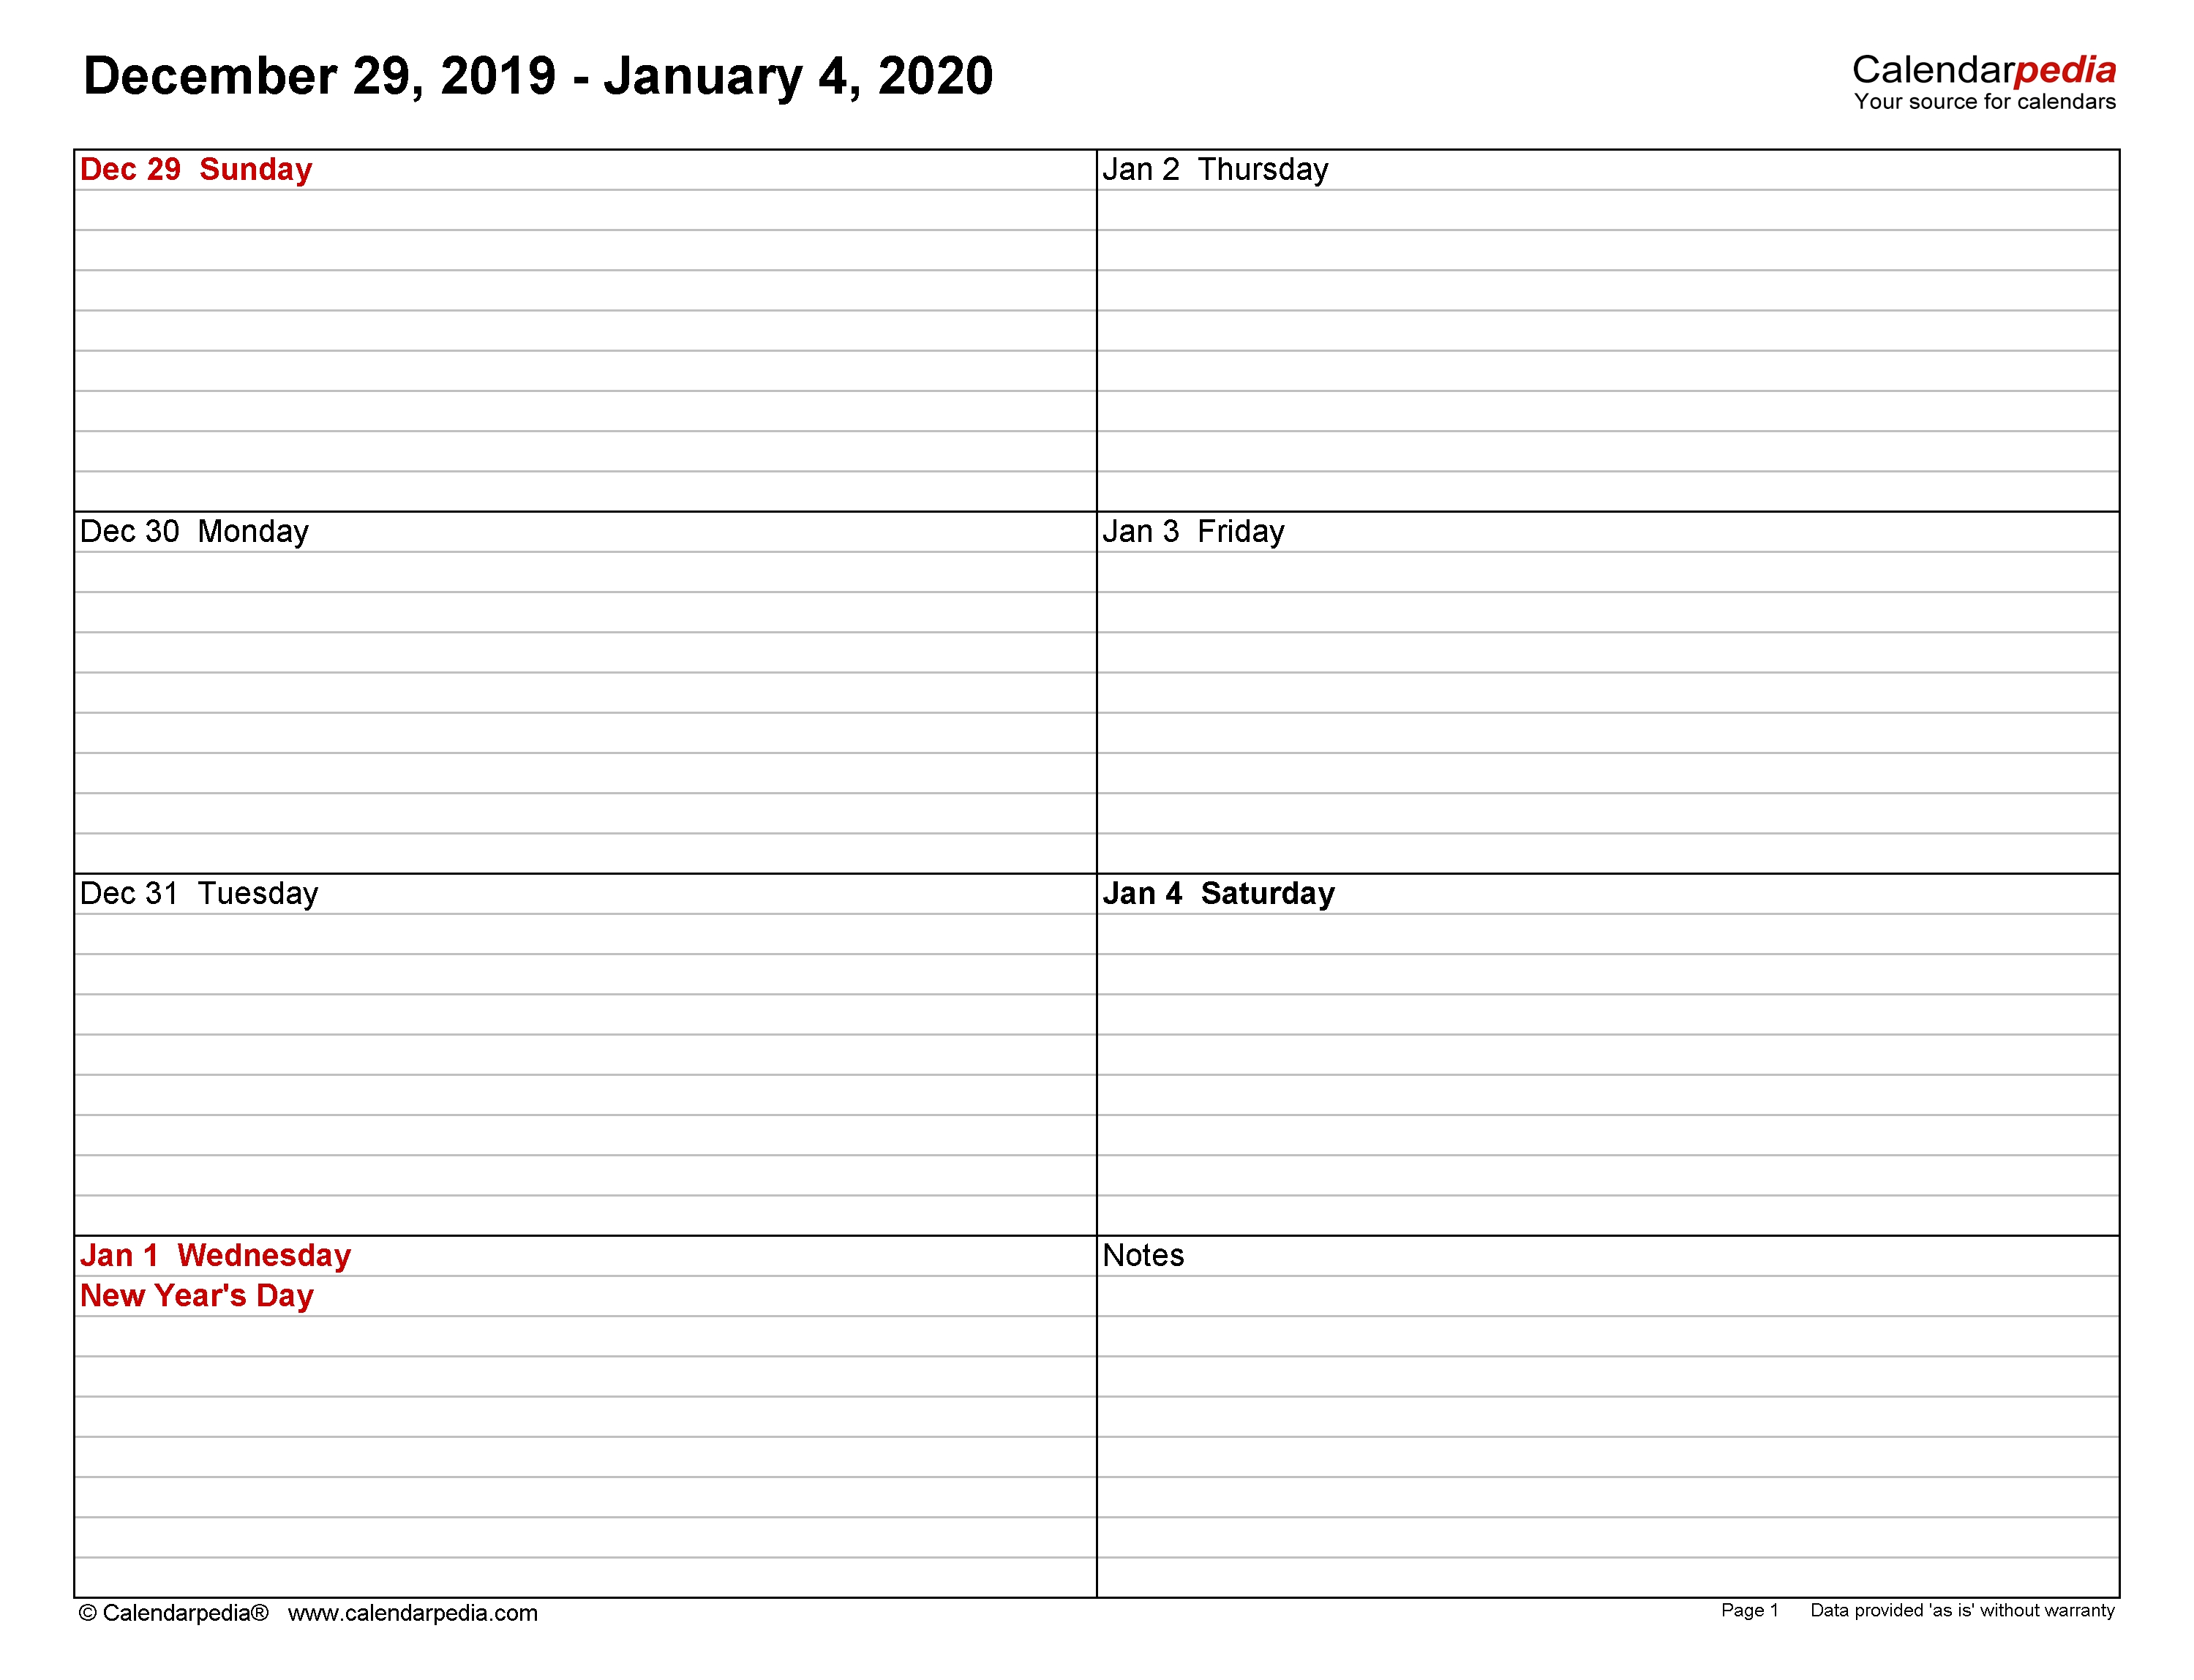 Weekly Calendars 2020 For Word - 12 Free Printable Templates-Day To Day Calendar Template 2020